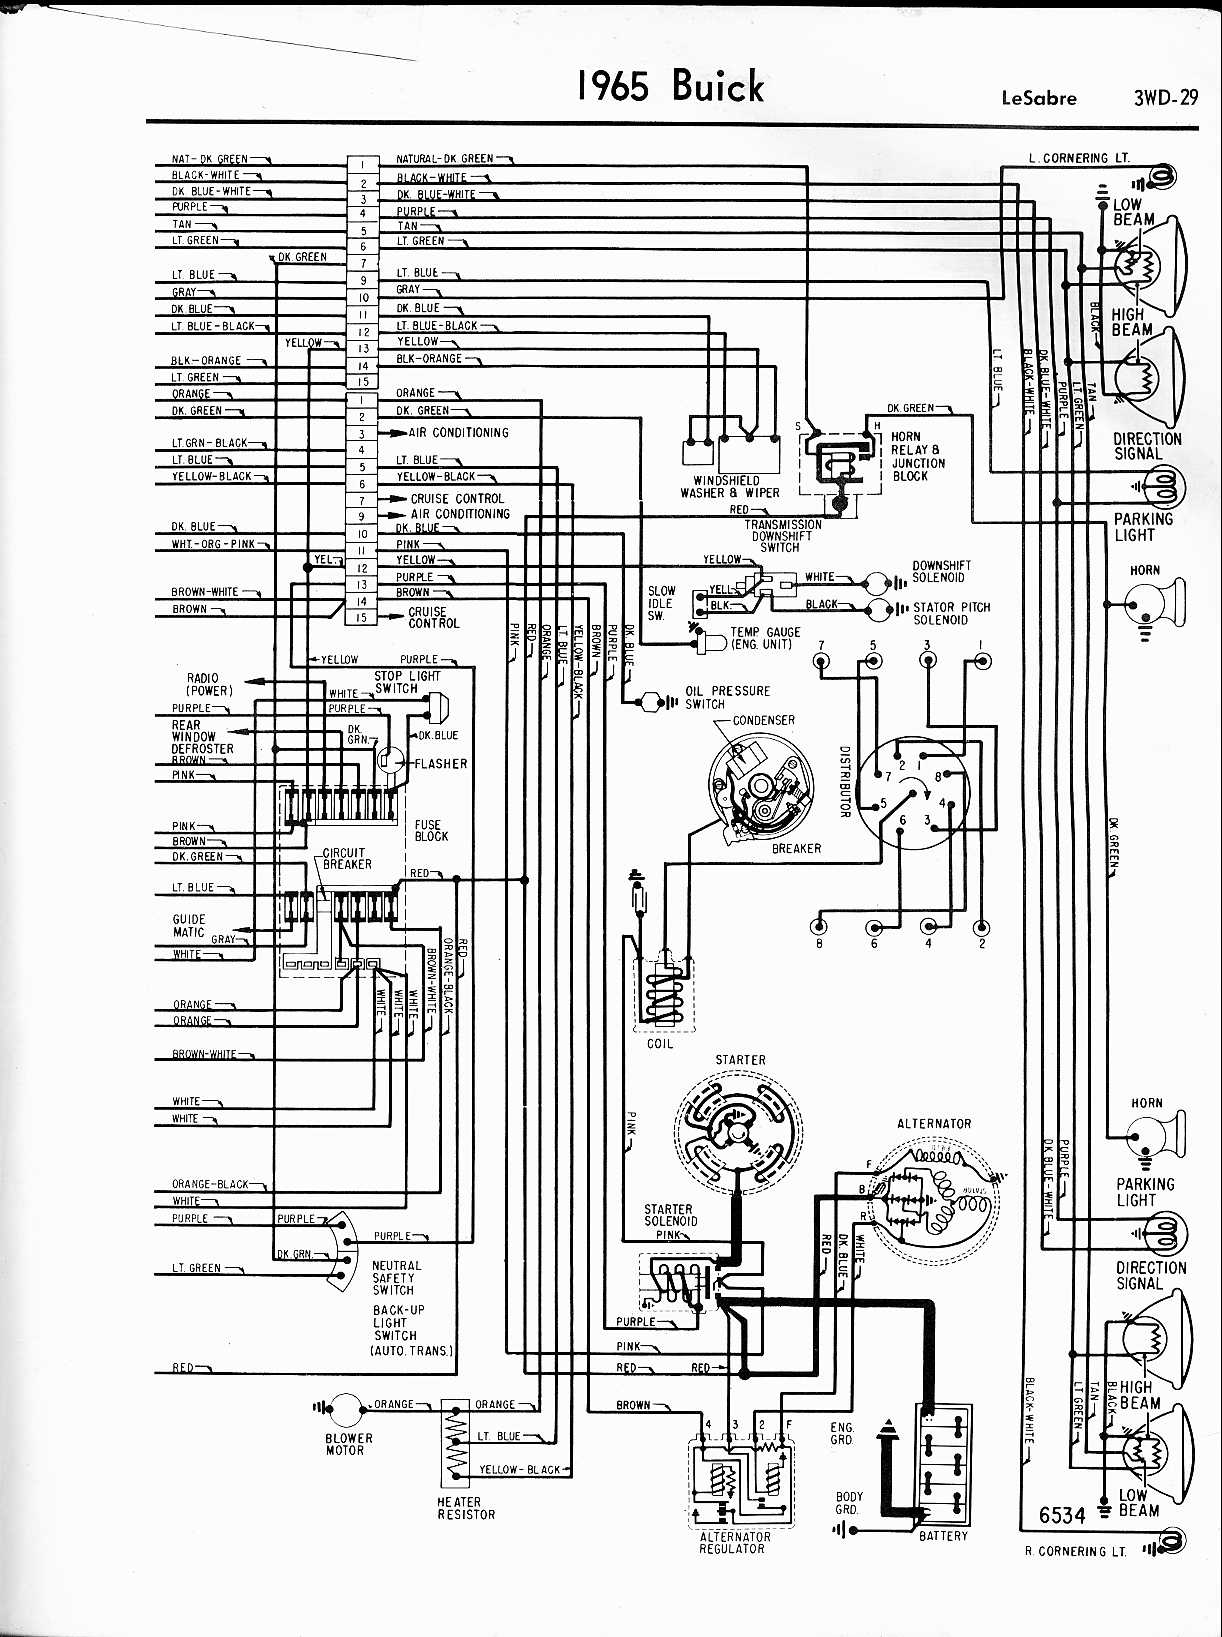 1969 buick lesabre ignition wiring diagram best wiring library rh 24 princestaash org